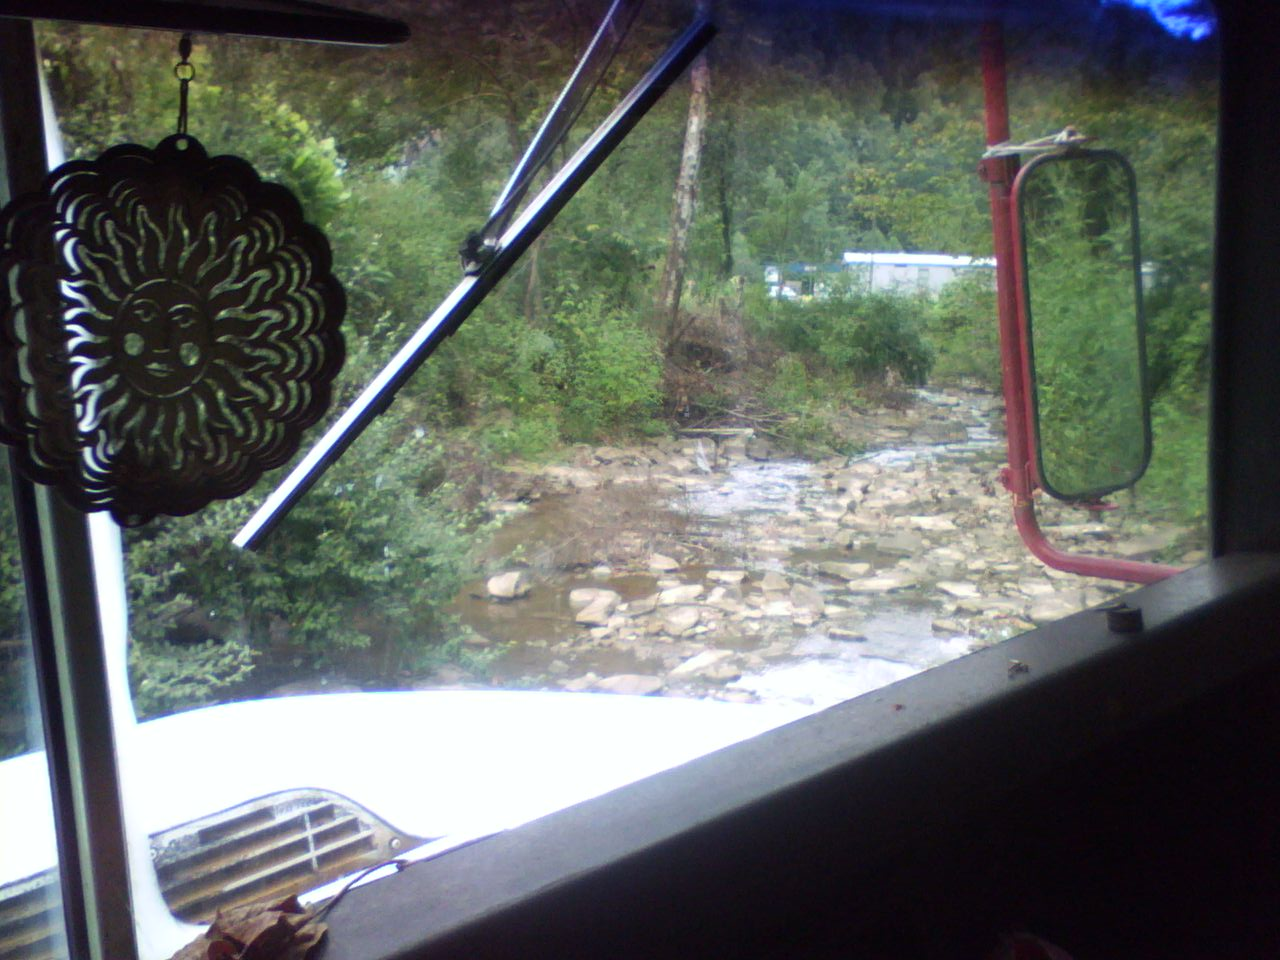 What%20it%20looks%20like%20to%20drive%20a%20bus%20in%20a%20creekbed